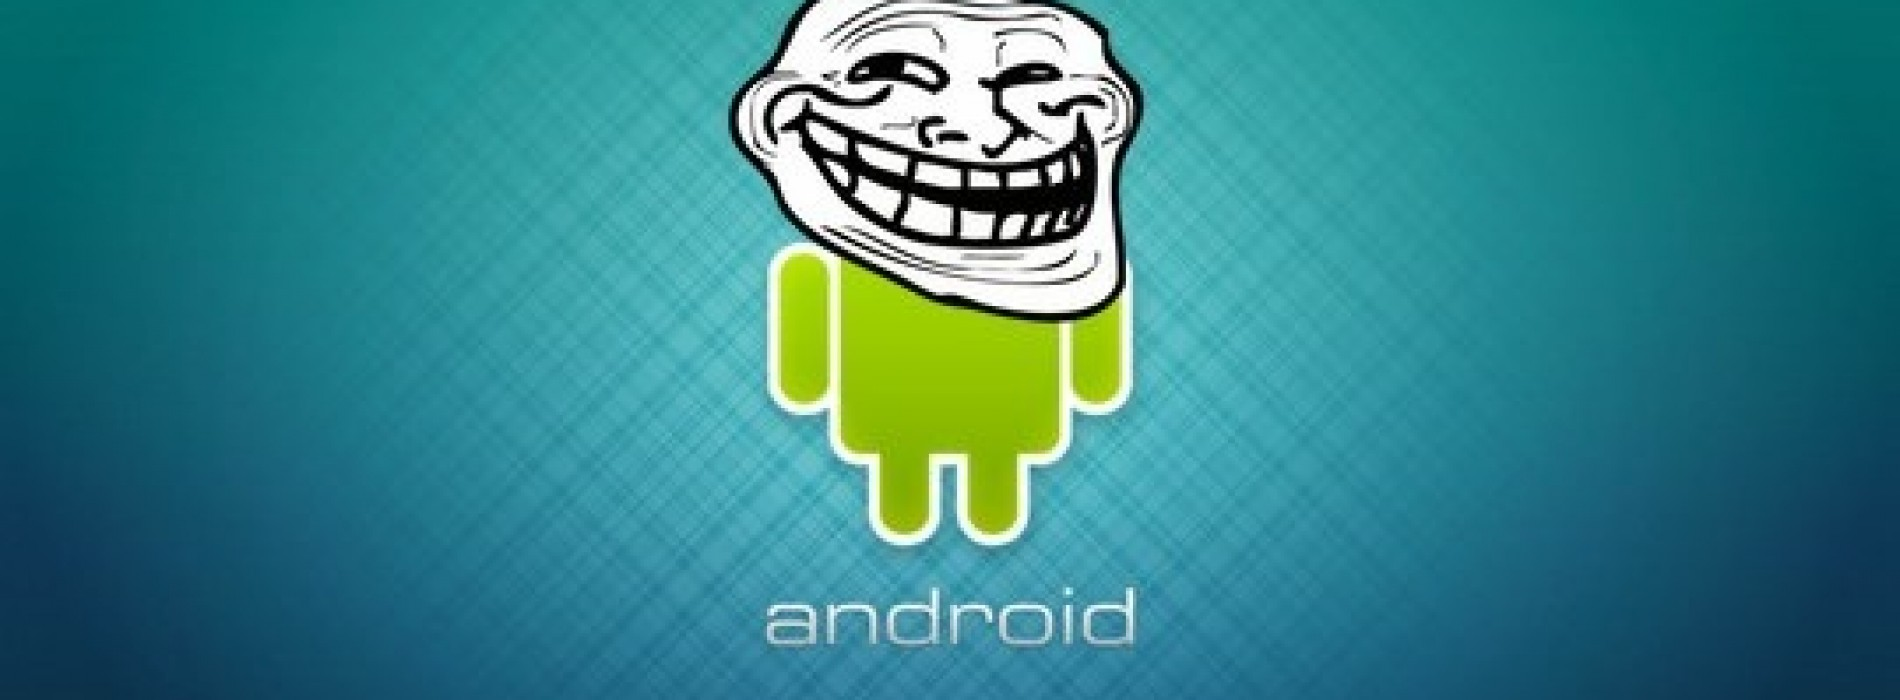 Trolldroid: Robert Scoble says Andy Rubin leaving Android, U mad bro?